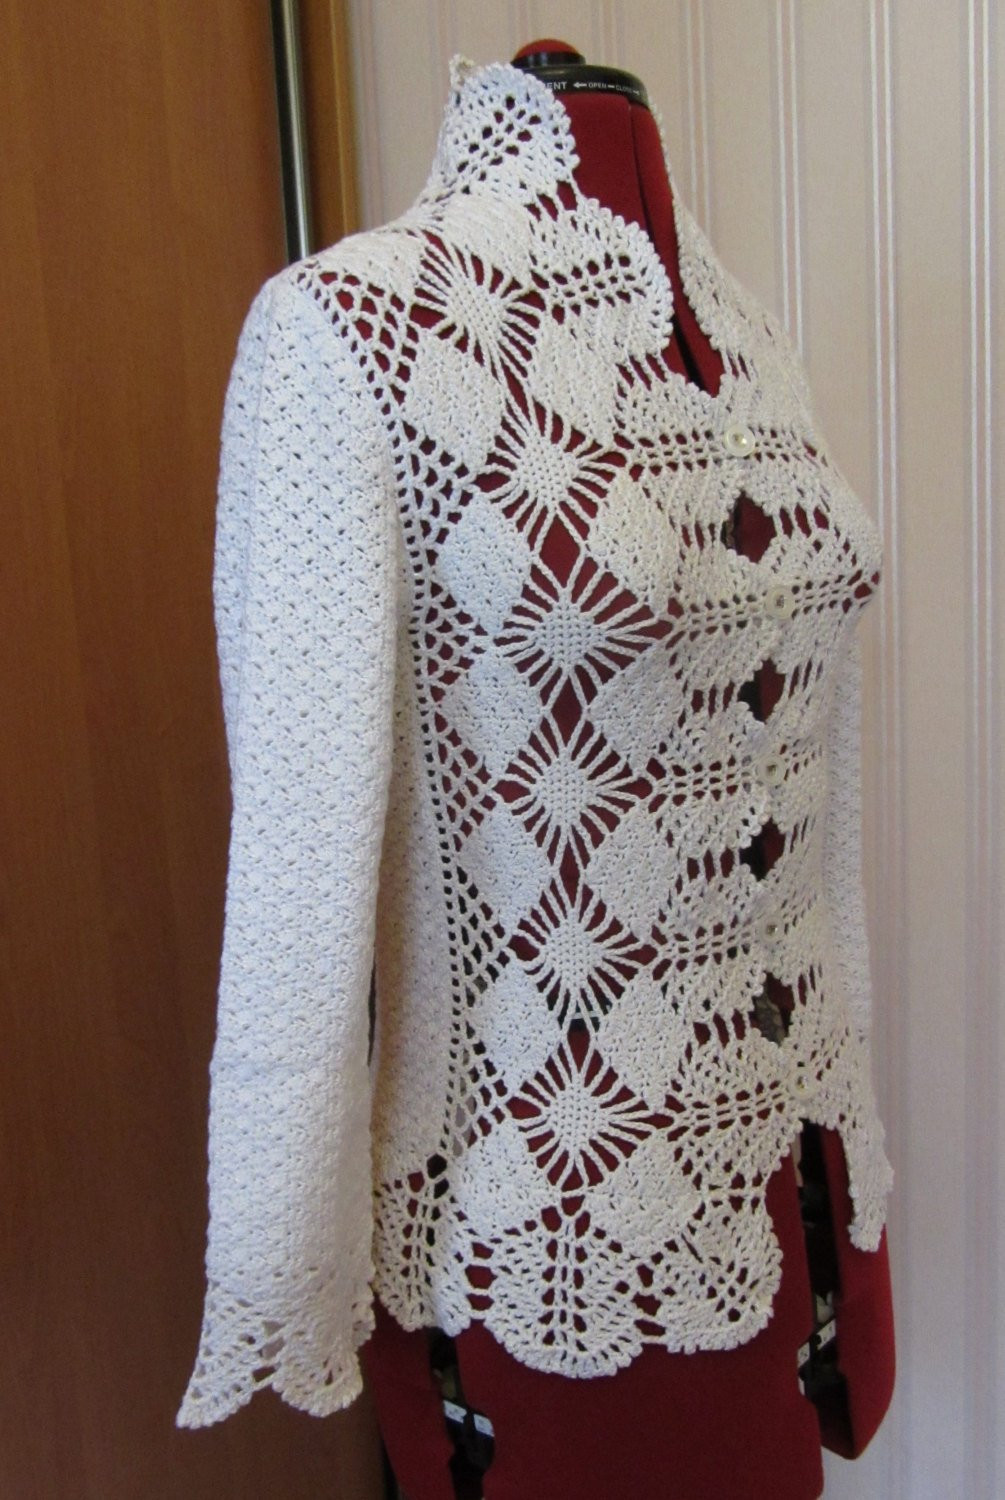 Crochet Jacket Awesome Crochet Jacket Lace Jacket Womens Clothing White Jacket Of Charming 45 Pictures Crochet Jacket